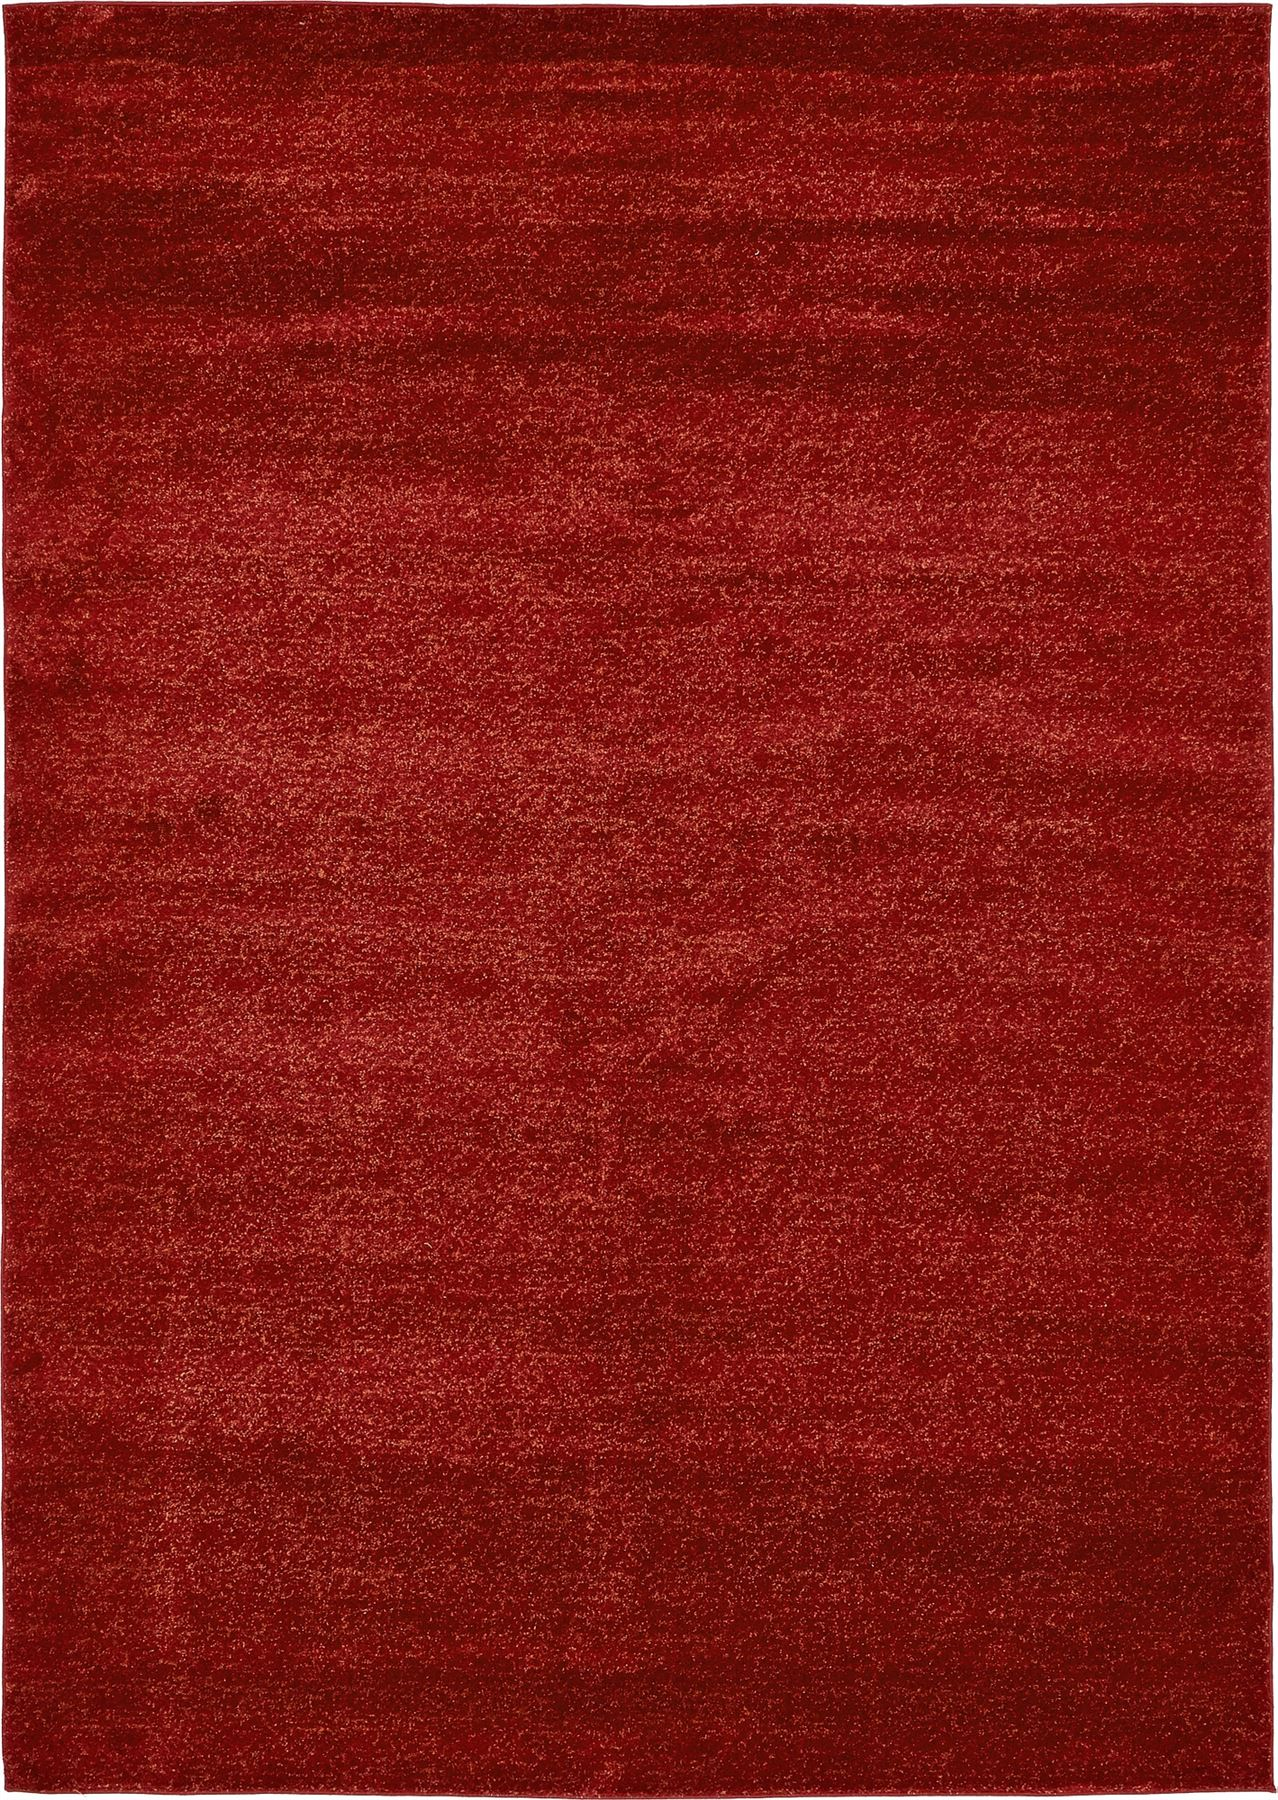 Soft rug plush carpet modern solid area rug floor room for Red area rugs contemporary